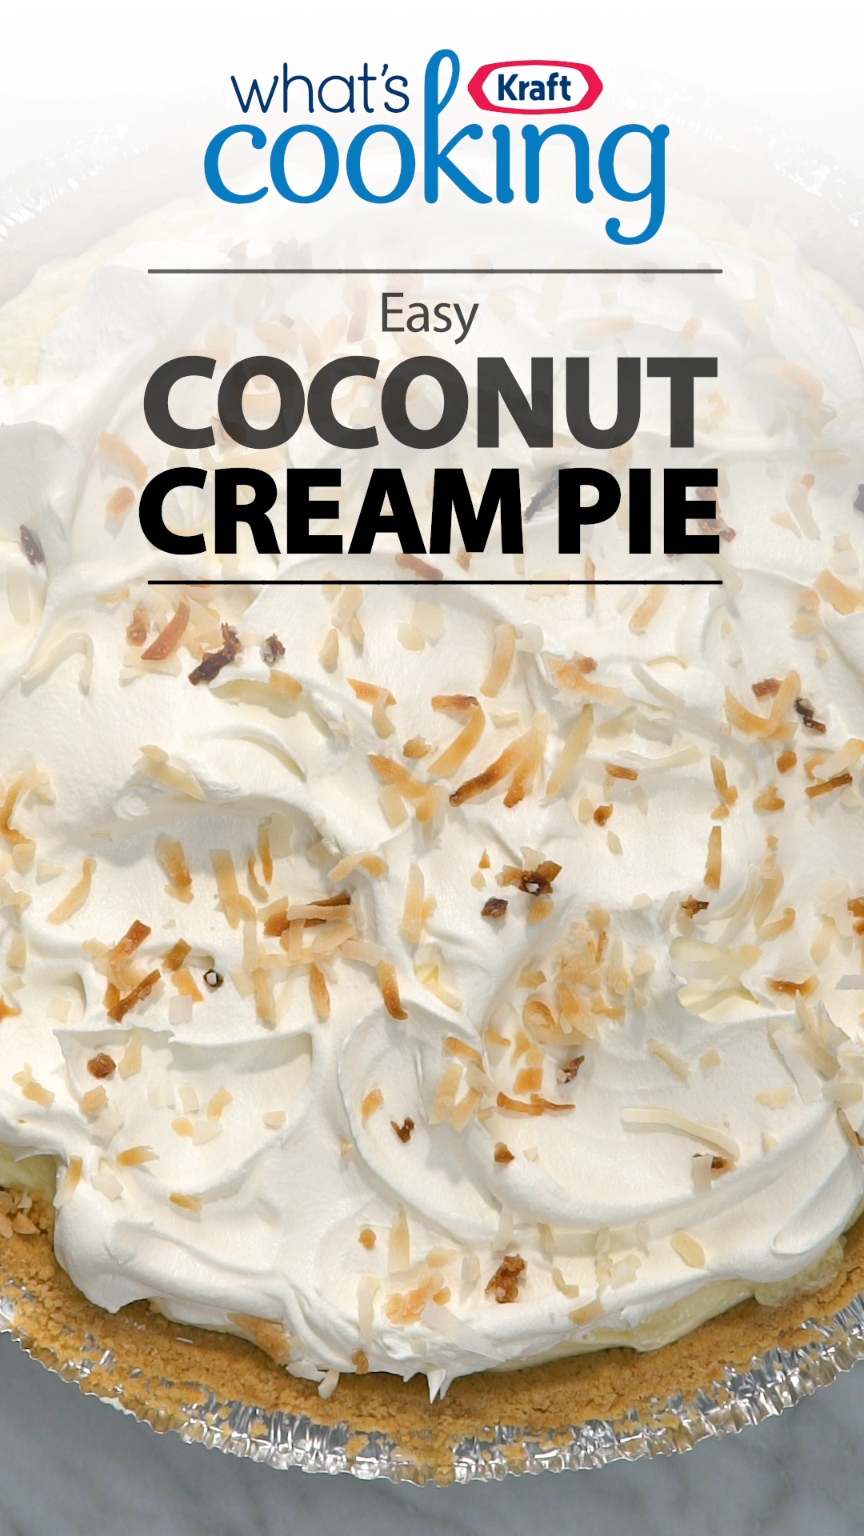 Can you make a delicious coconut cream pie in 15 min, with